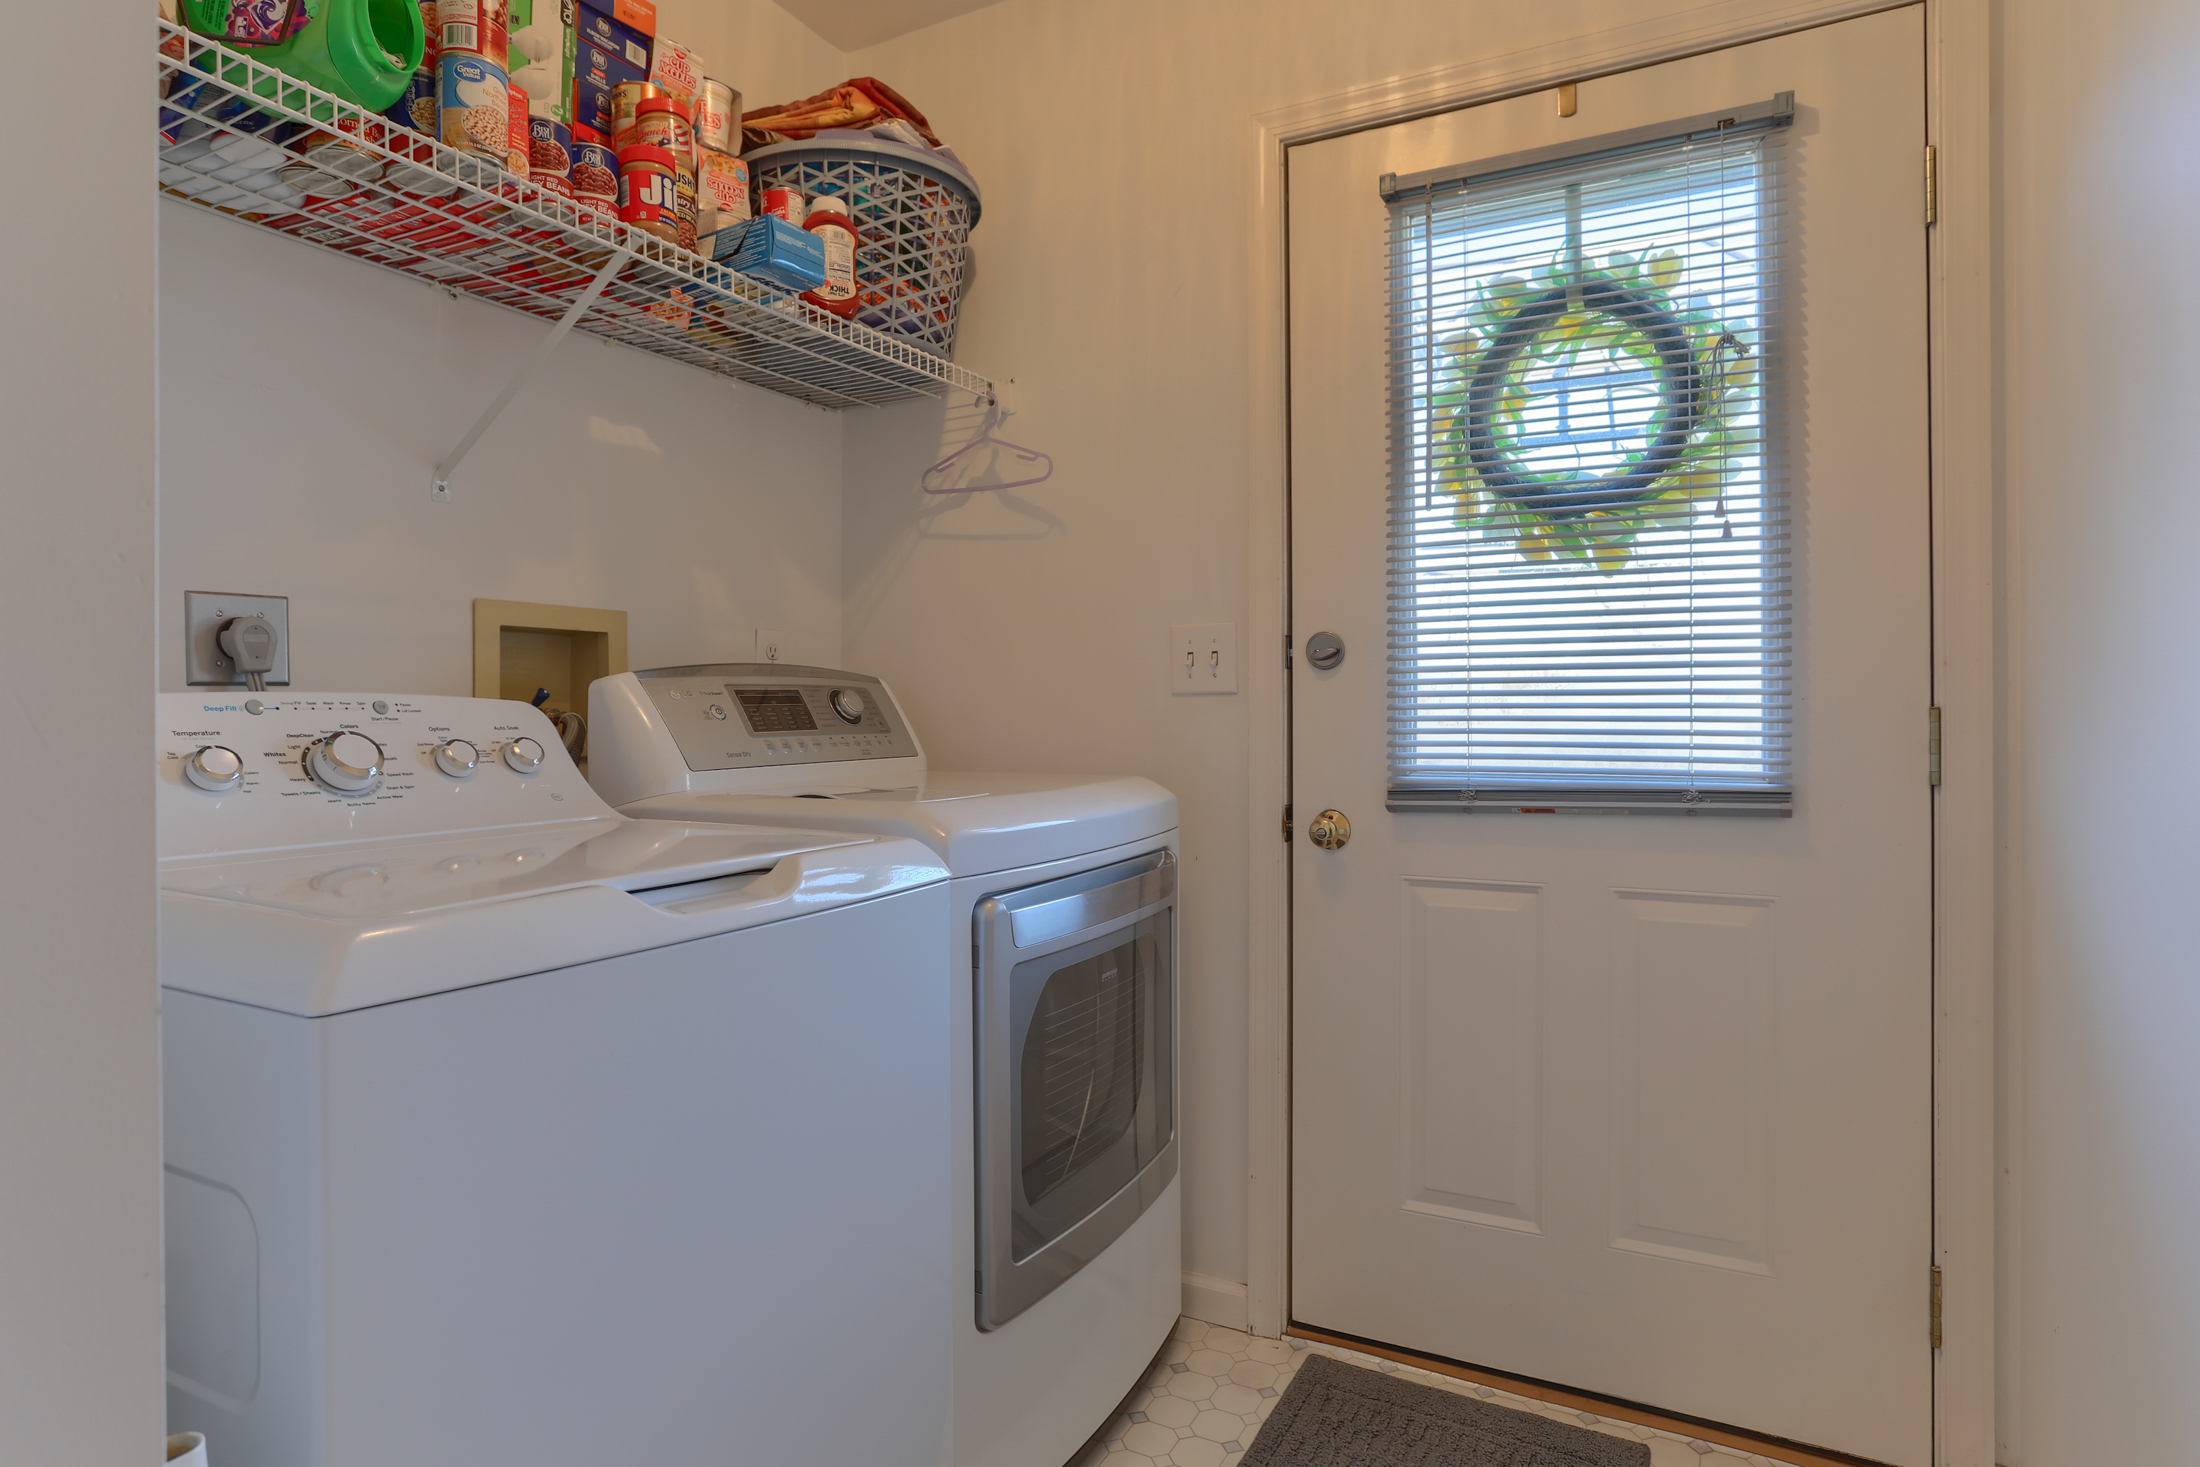 26 W. Strack Drive - Laundry Area (ELCO Home with LAND)